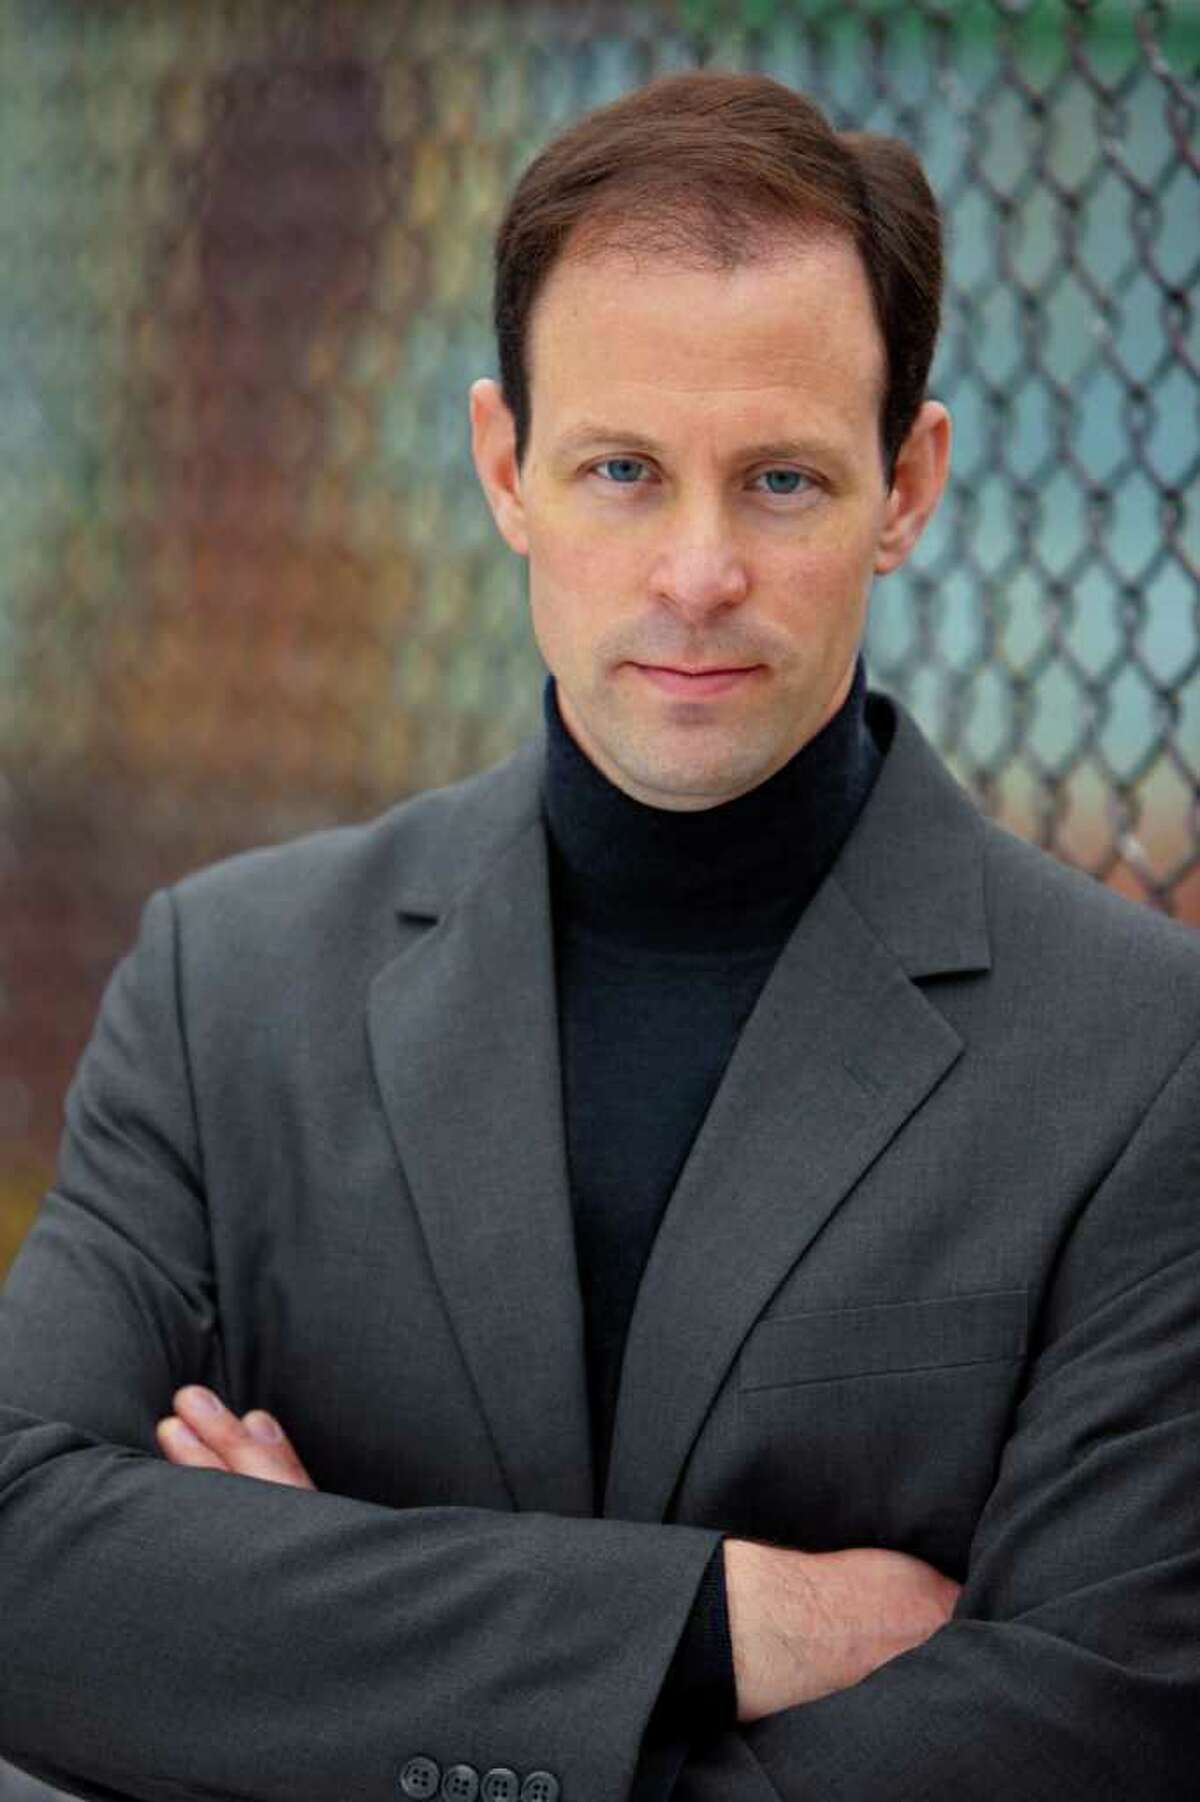 Brad Parks has turned his experience as an investigative journalist into a series of contemporary thrillers set in Newark, N.J. Parks grew up in Ridgefield.